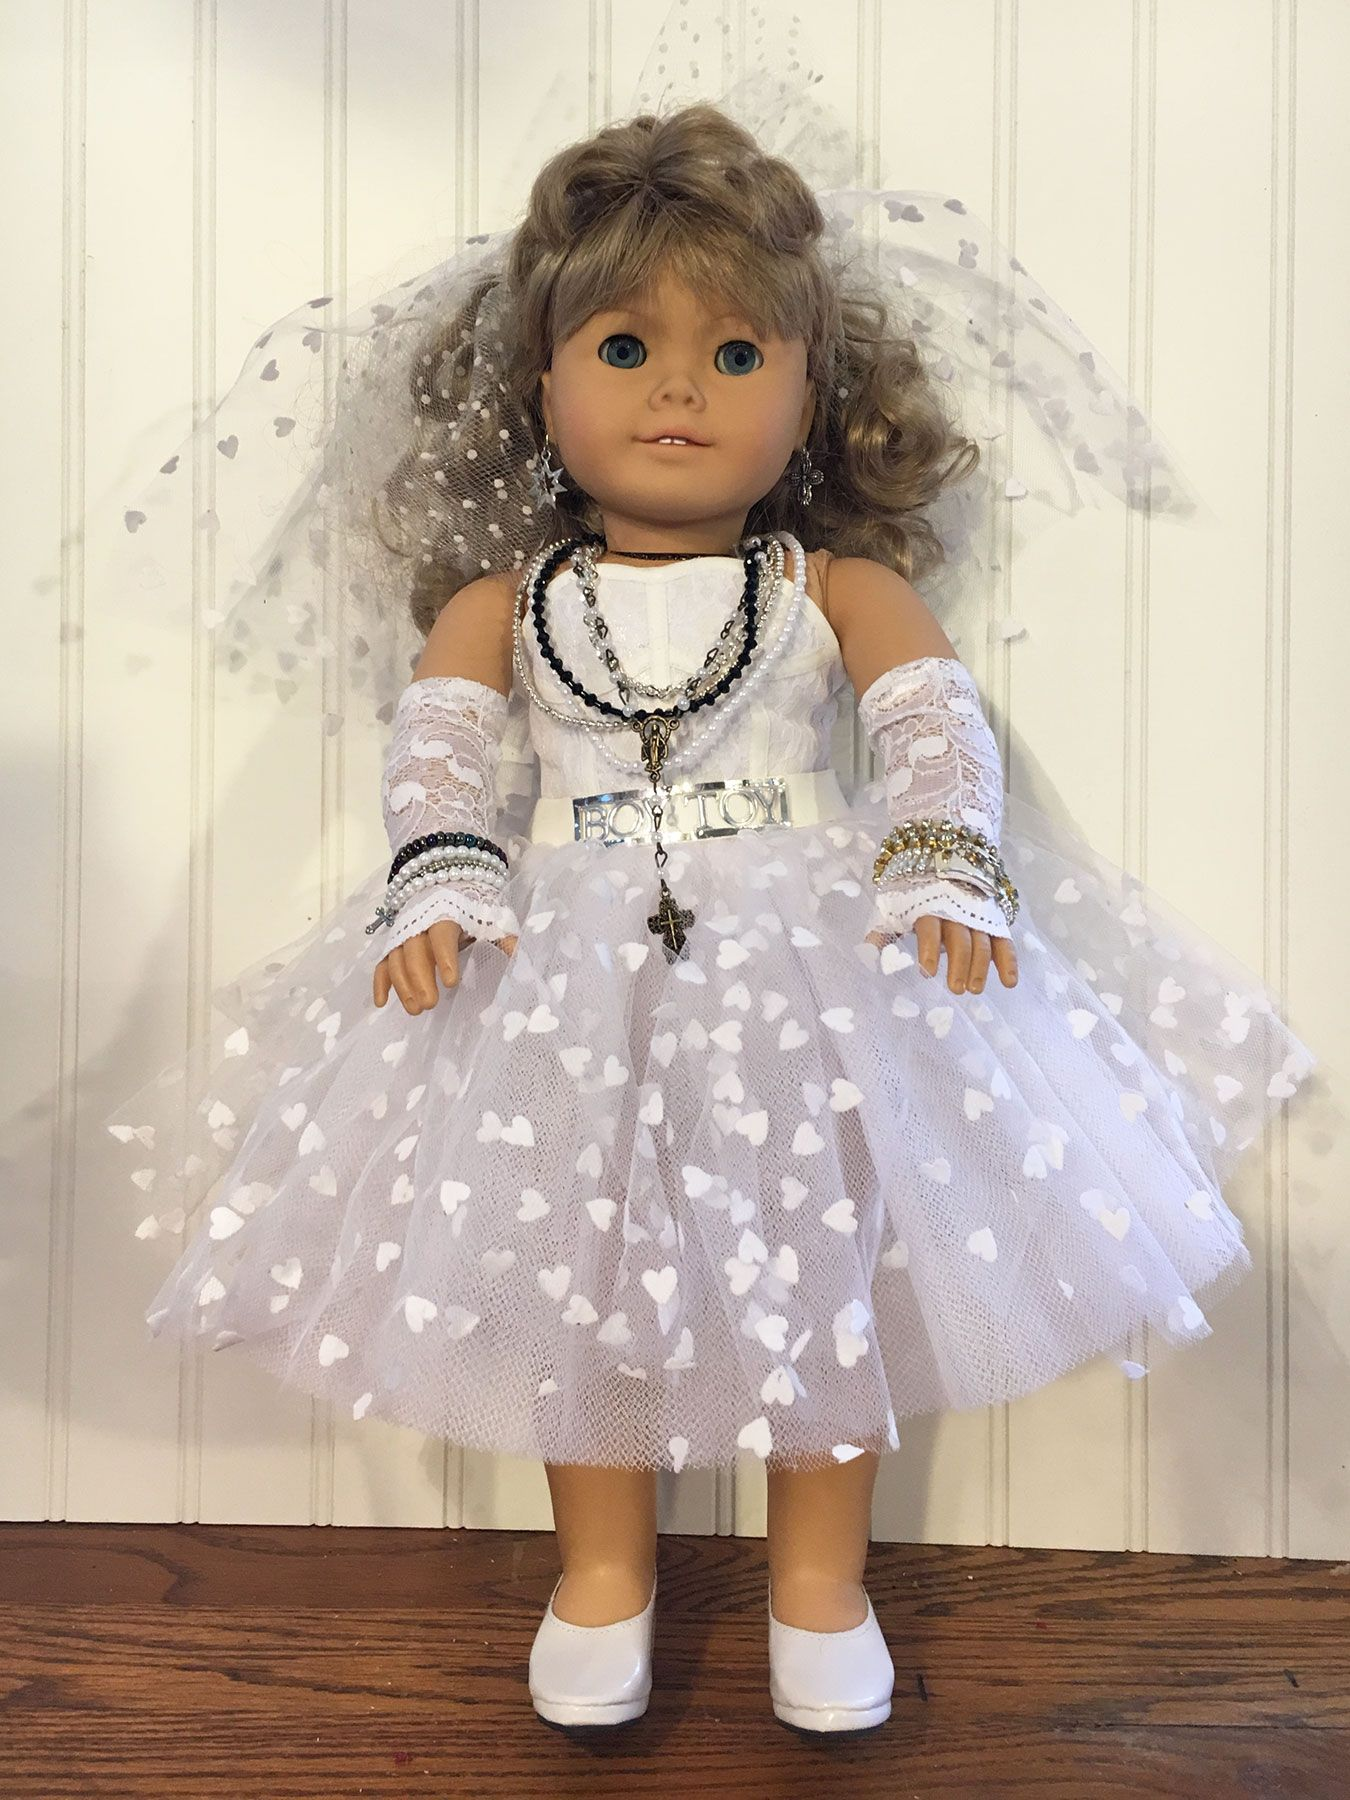 Kirsten as Madonna american girl doll cosplay Pinterest